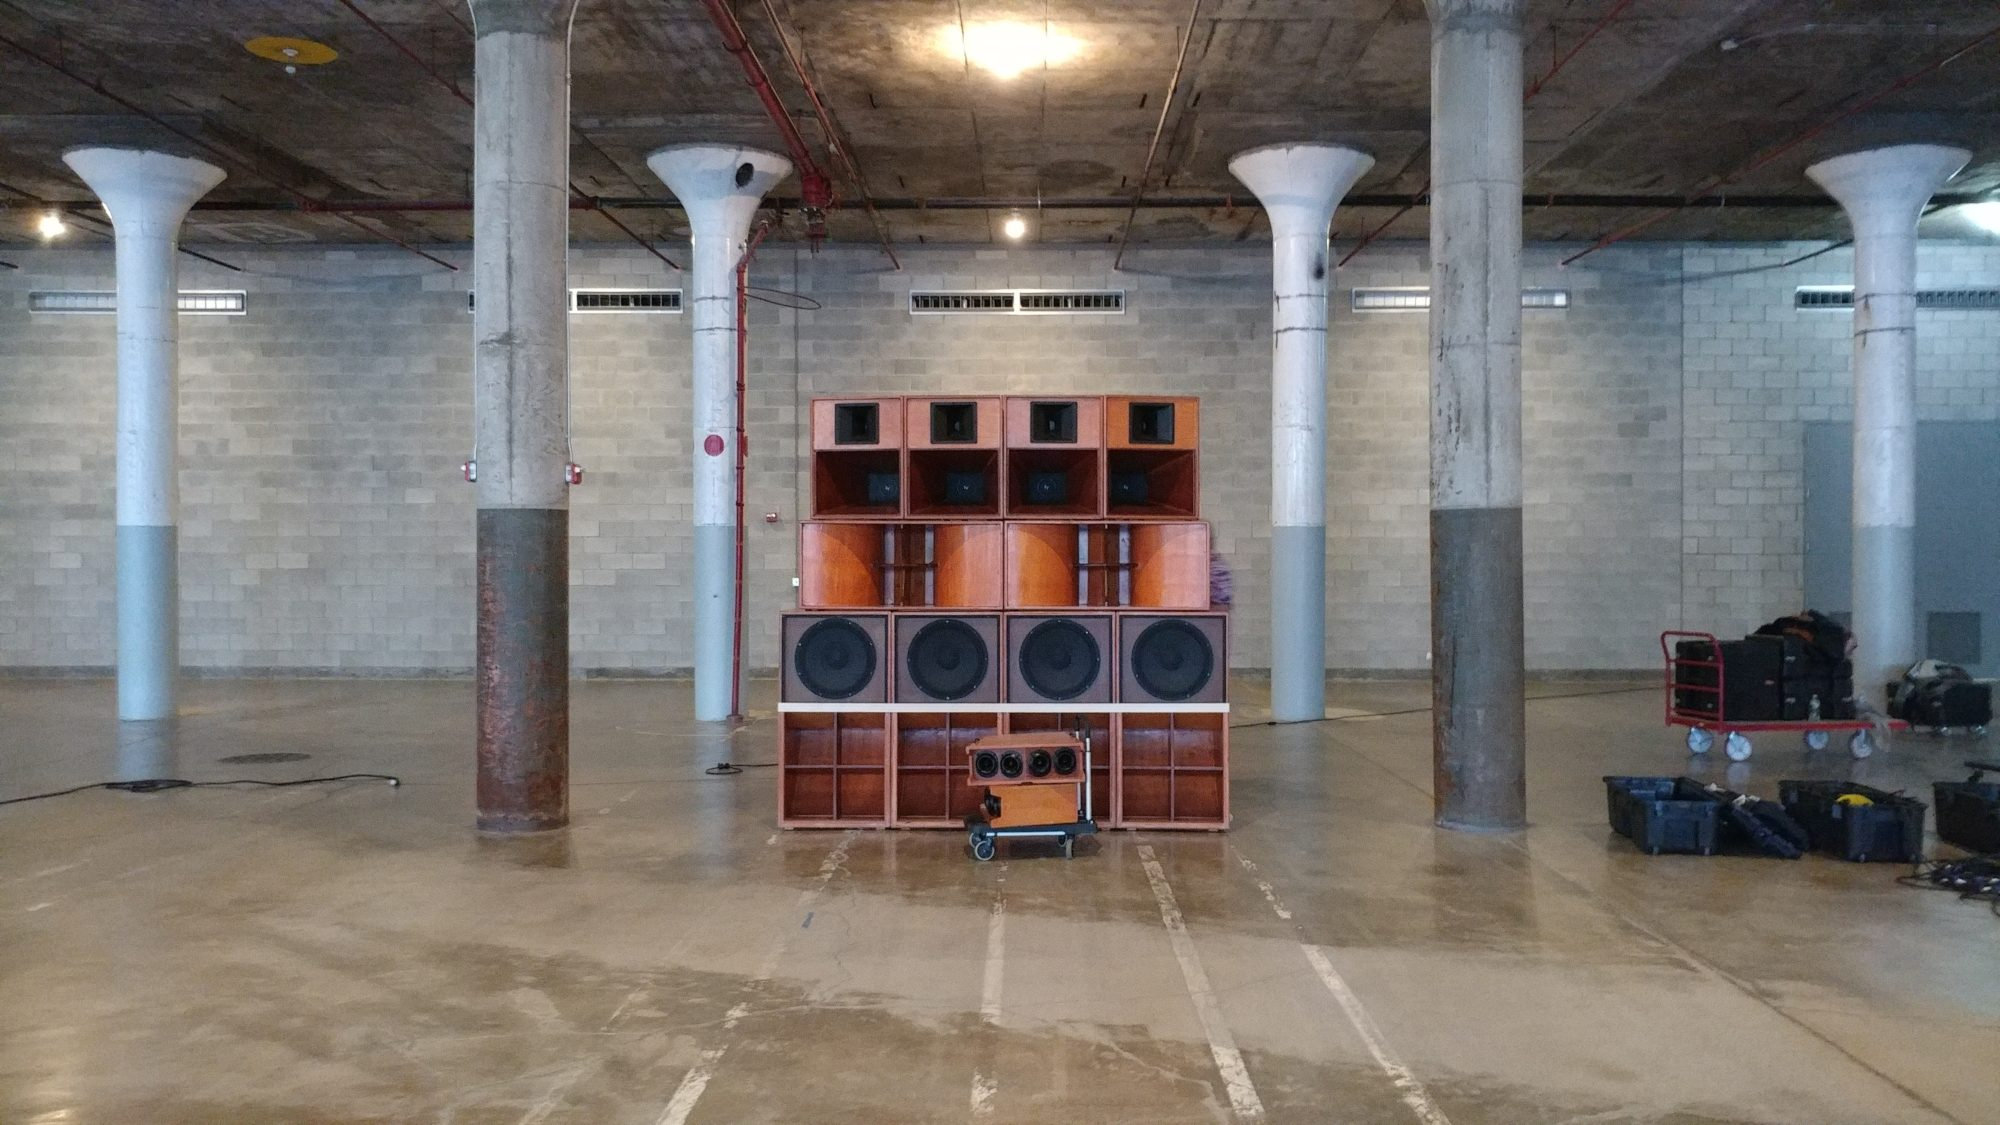 Watch the Dub-Stuy system in action at Dia:Beacon | Dub-Stuy